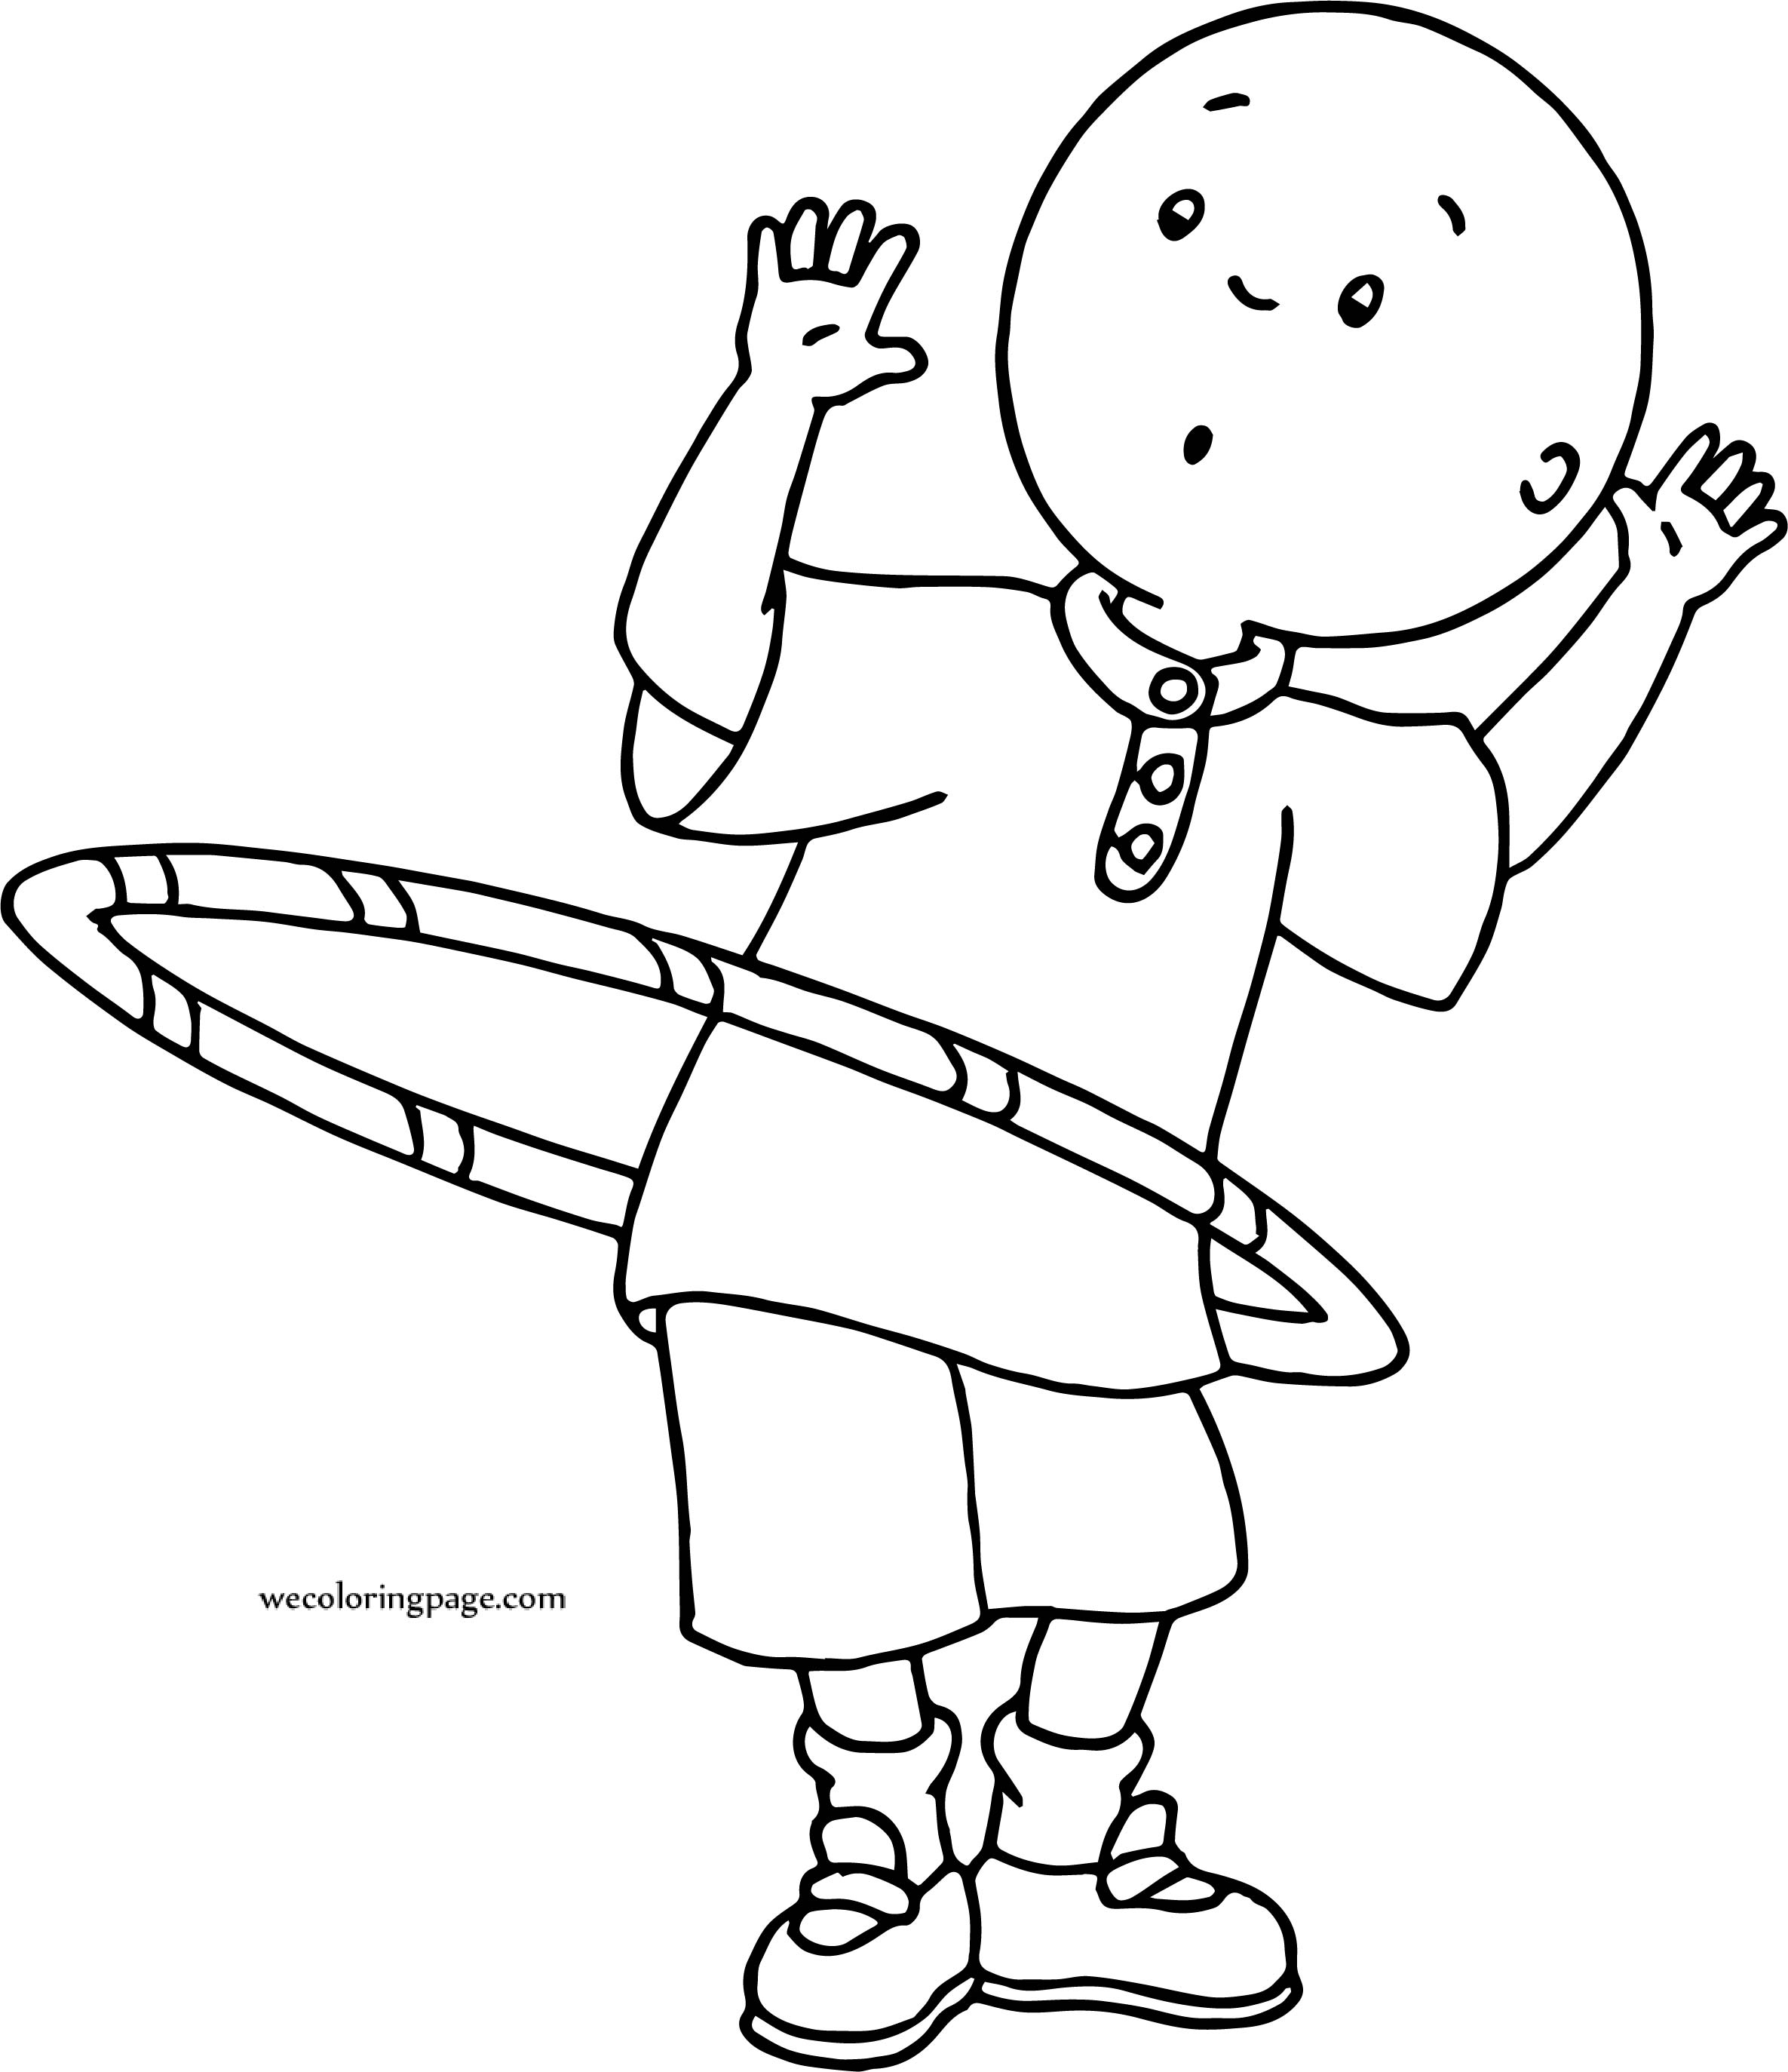 Caillou Playing Turning Ring Coloring Page